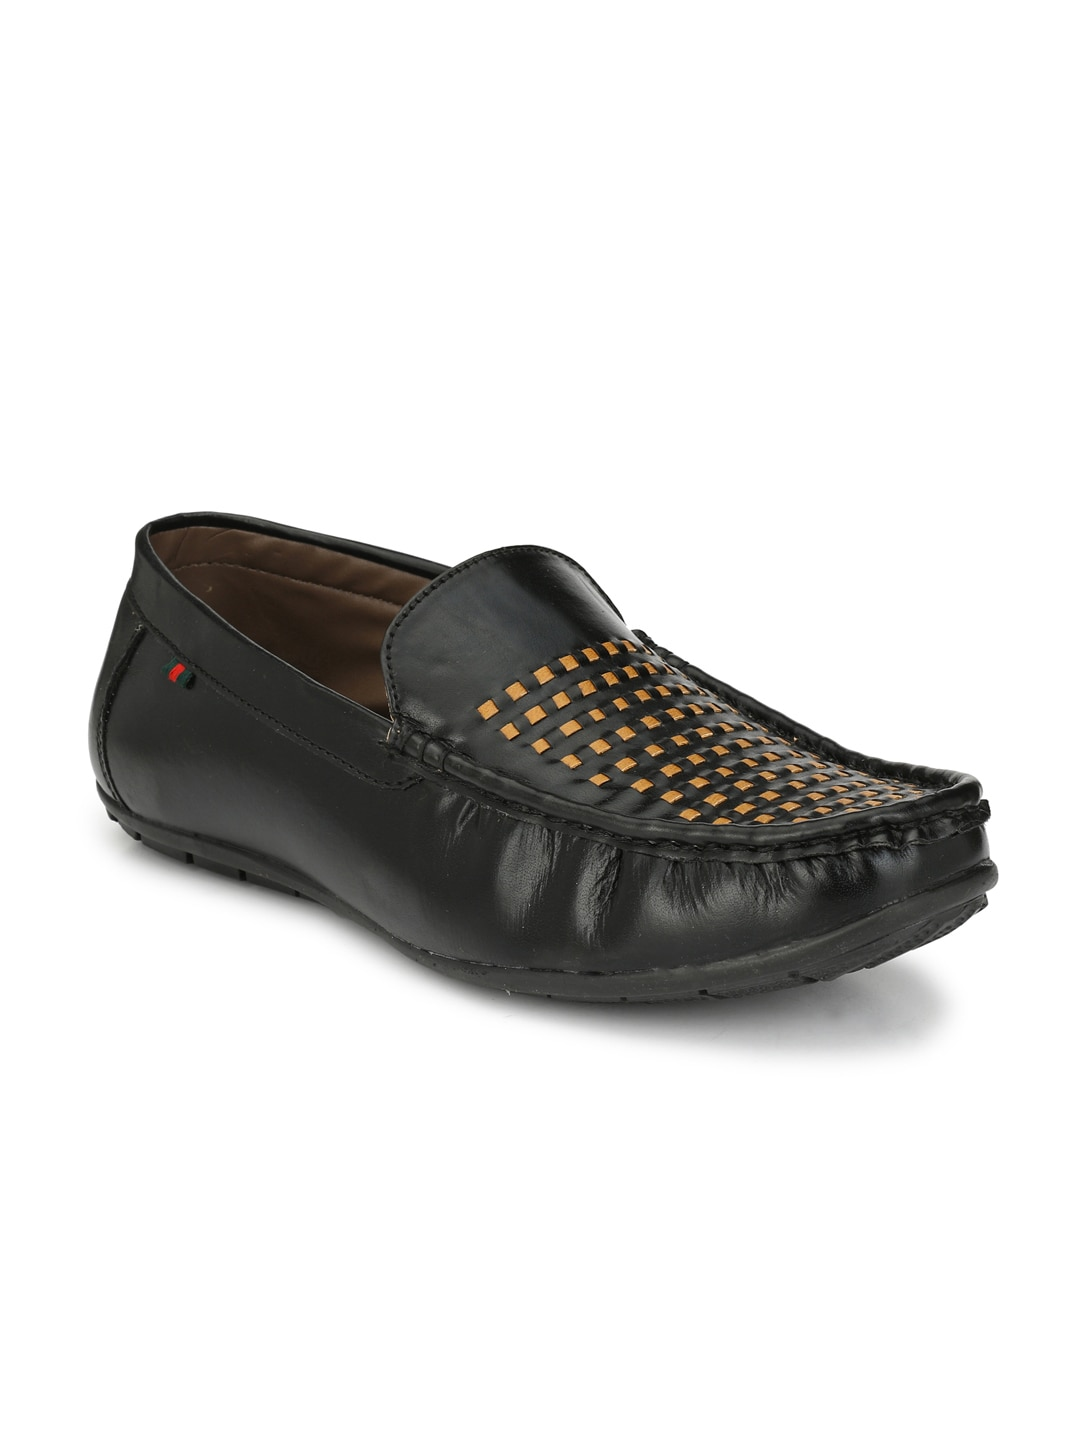 0eb026541406 Casual Shoes For Men - Buy Casual   Flat Shoes For Men